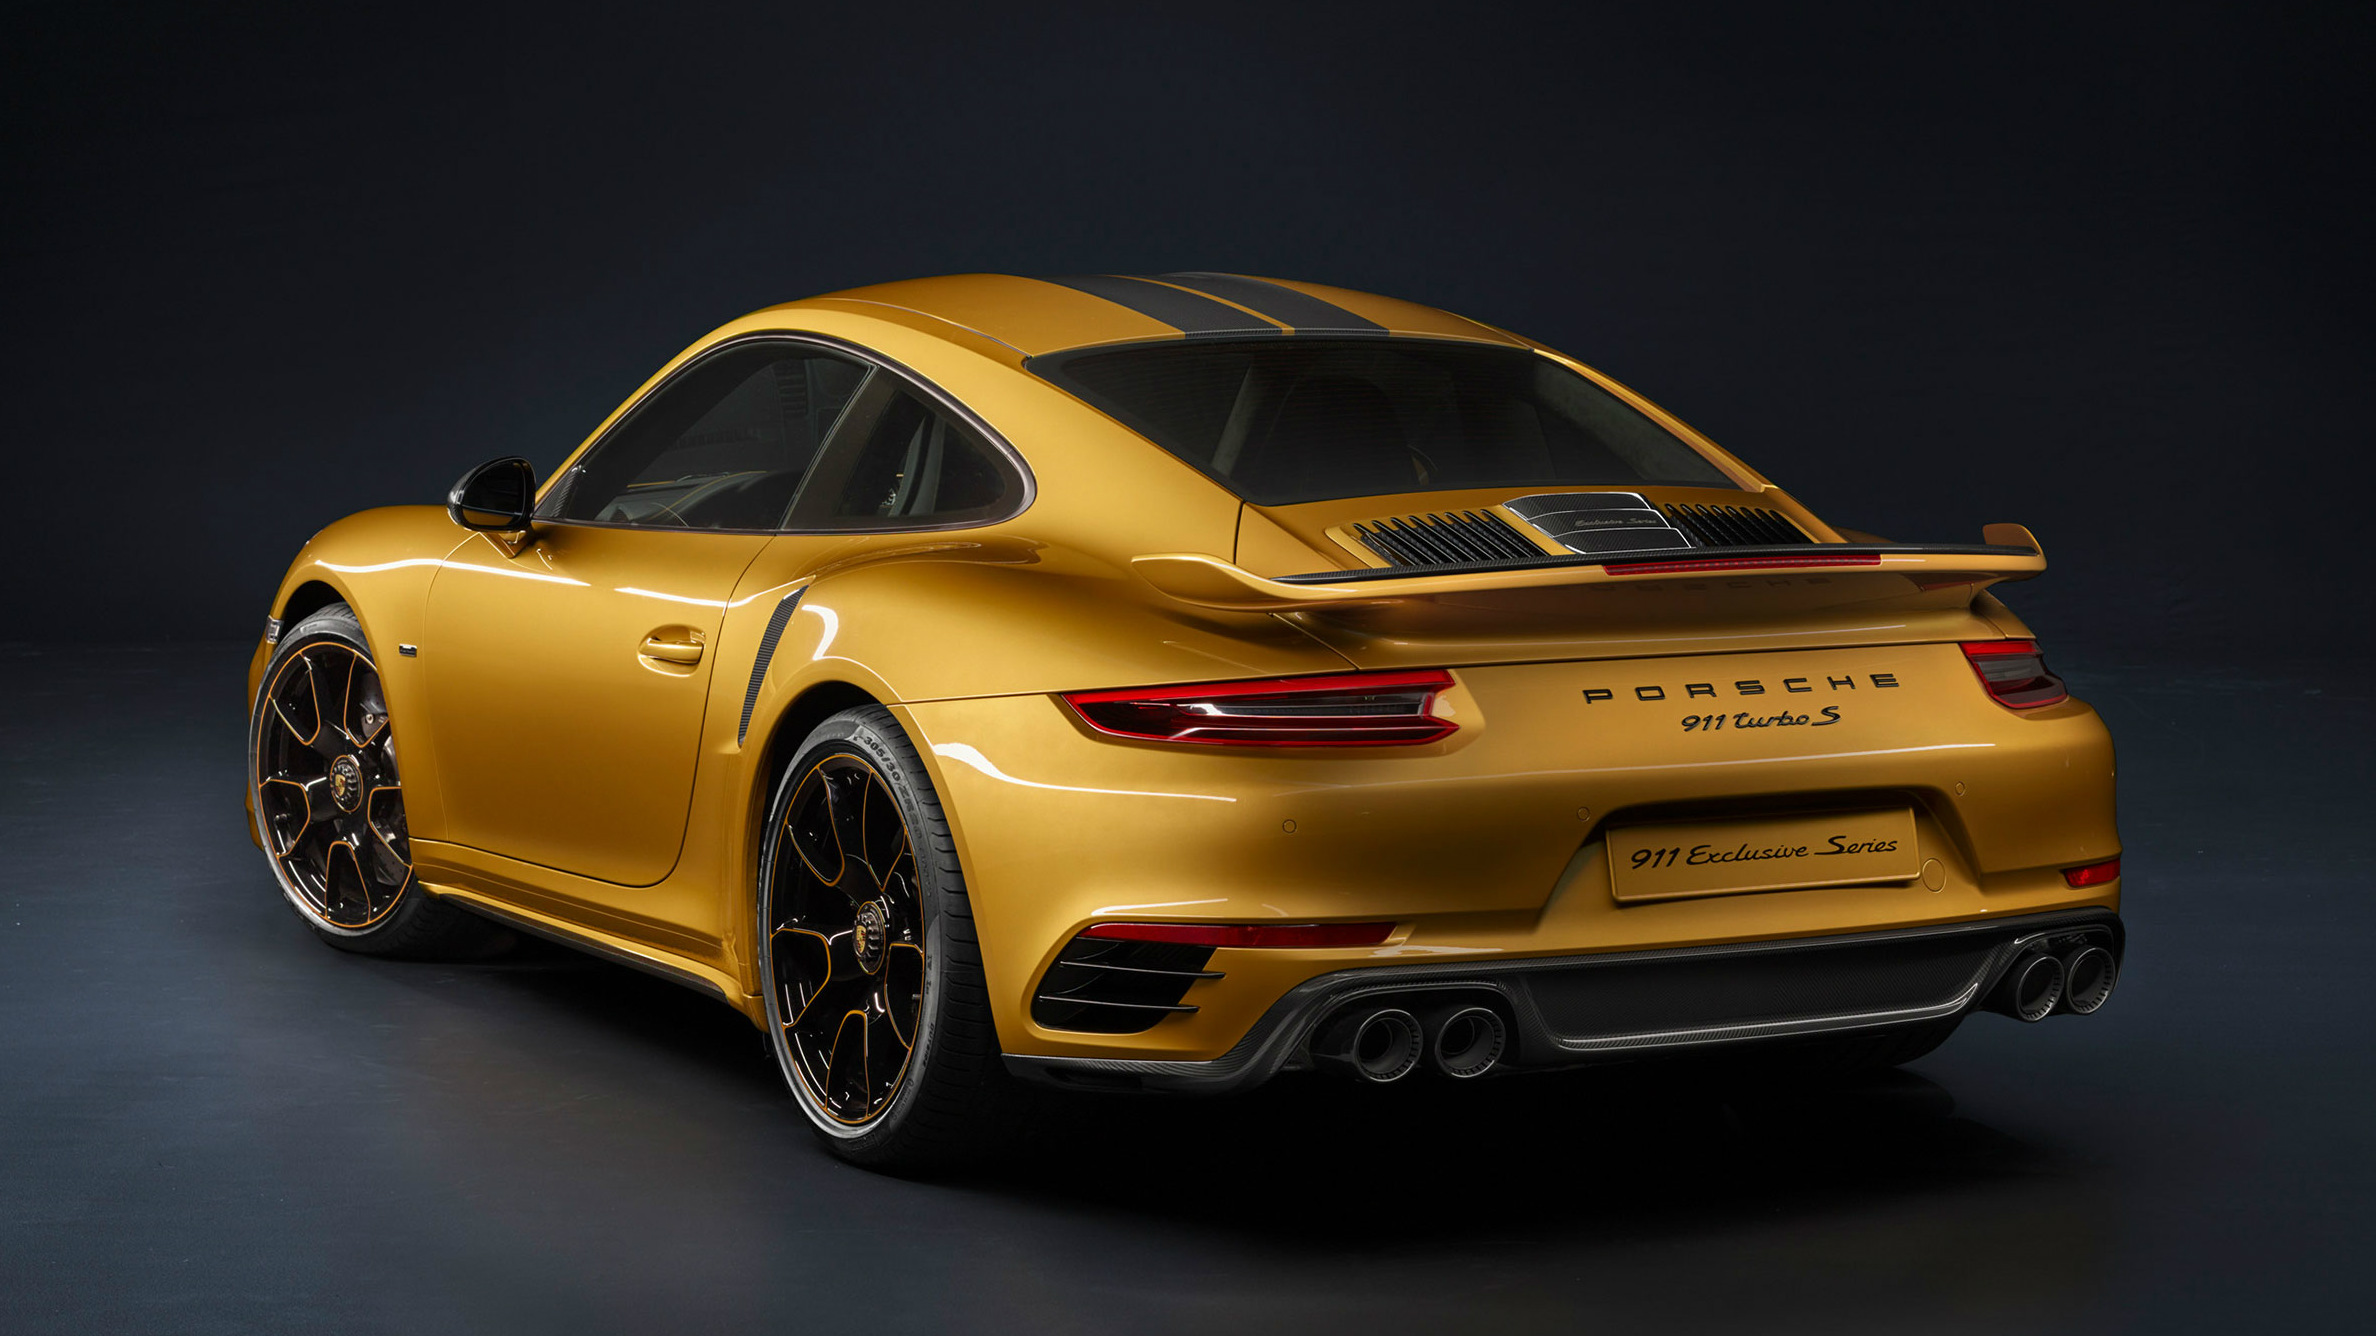 Porsche 911 Turbo S Exclusive Series Is Limited To 500